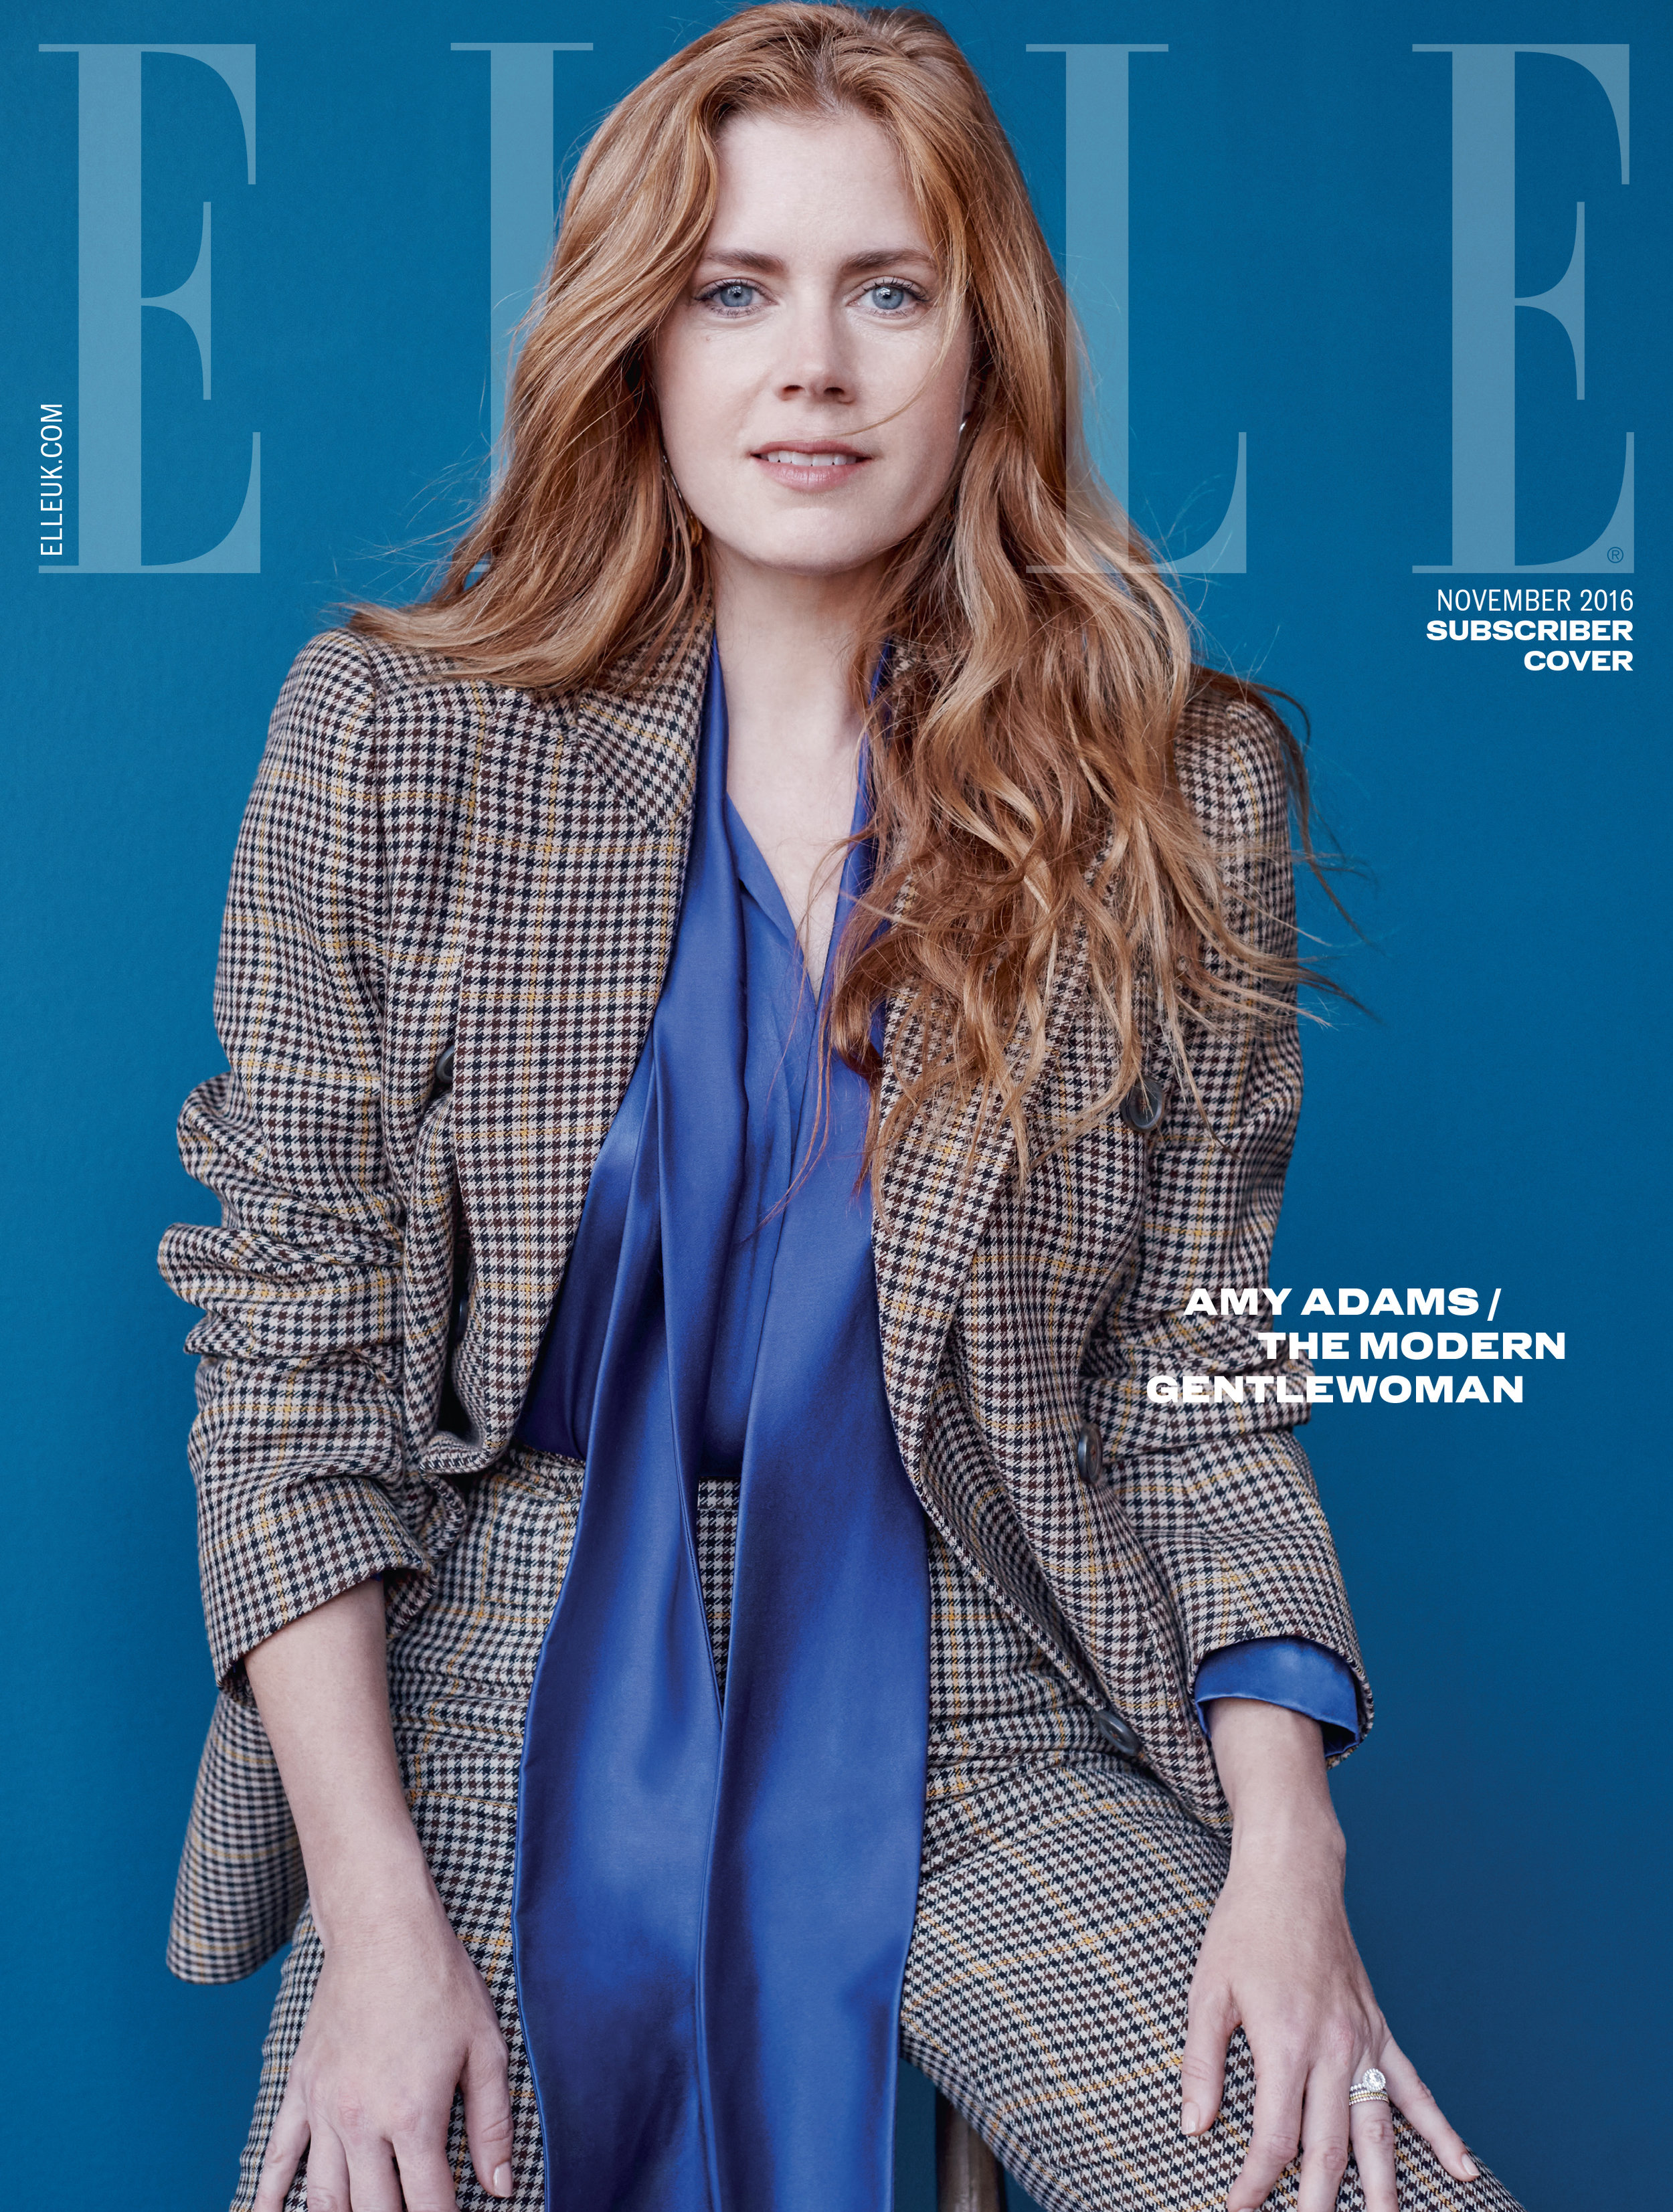 ELLEUK_NOVEMBER_SUBS_COVER_AMY_2016.jpg